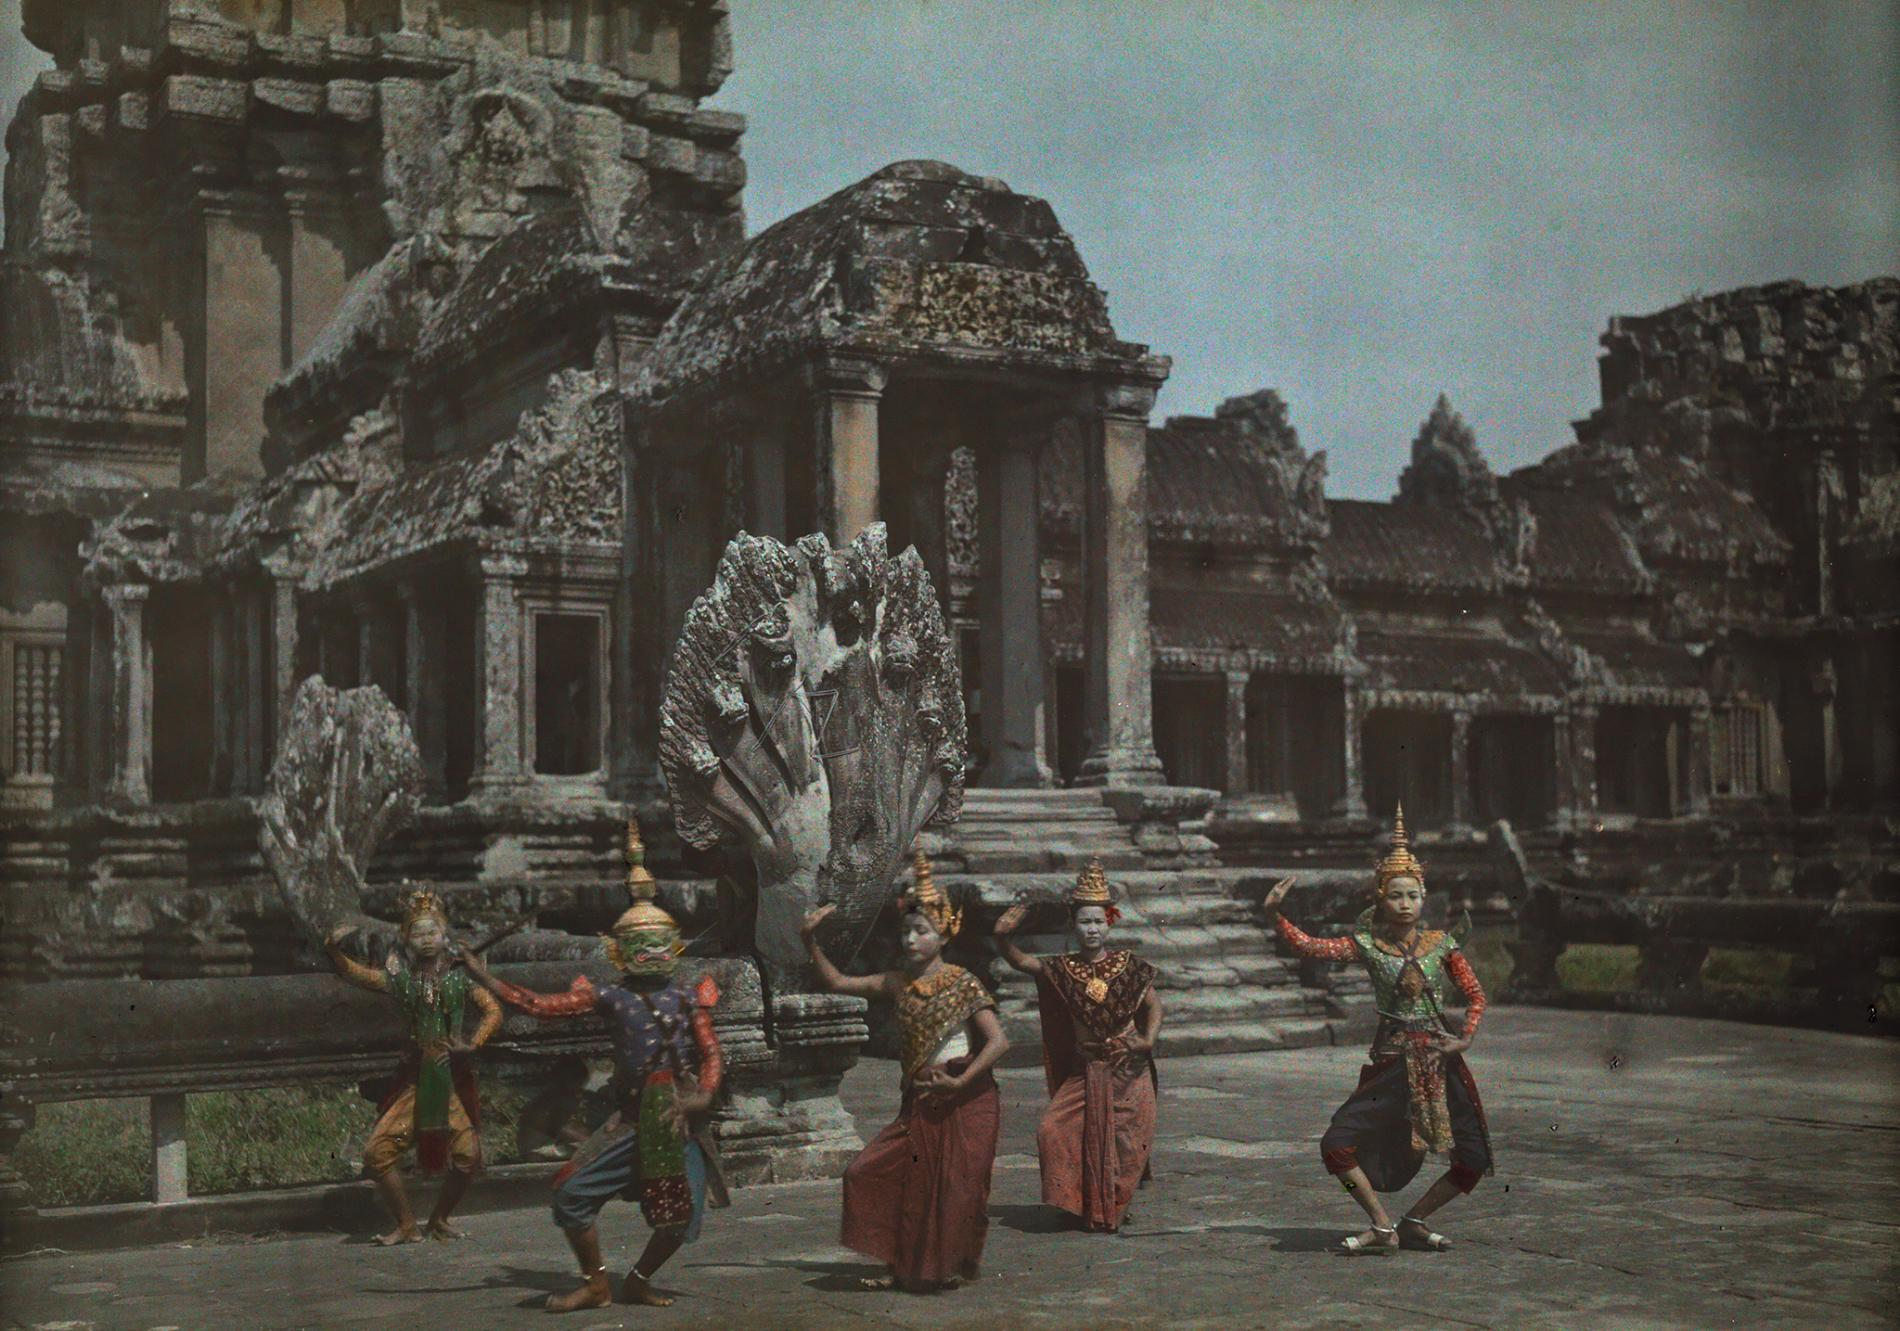 Cambodian dancers in traditional clothing perform on a terrace at Angkor Wat, near Siam Reap, Cambodia. Date unknown